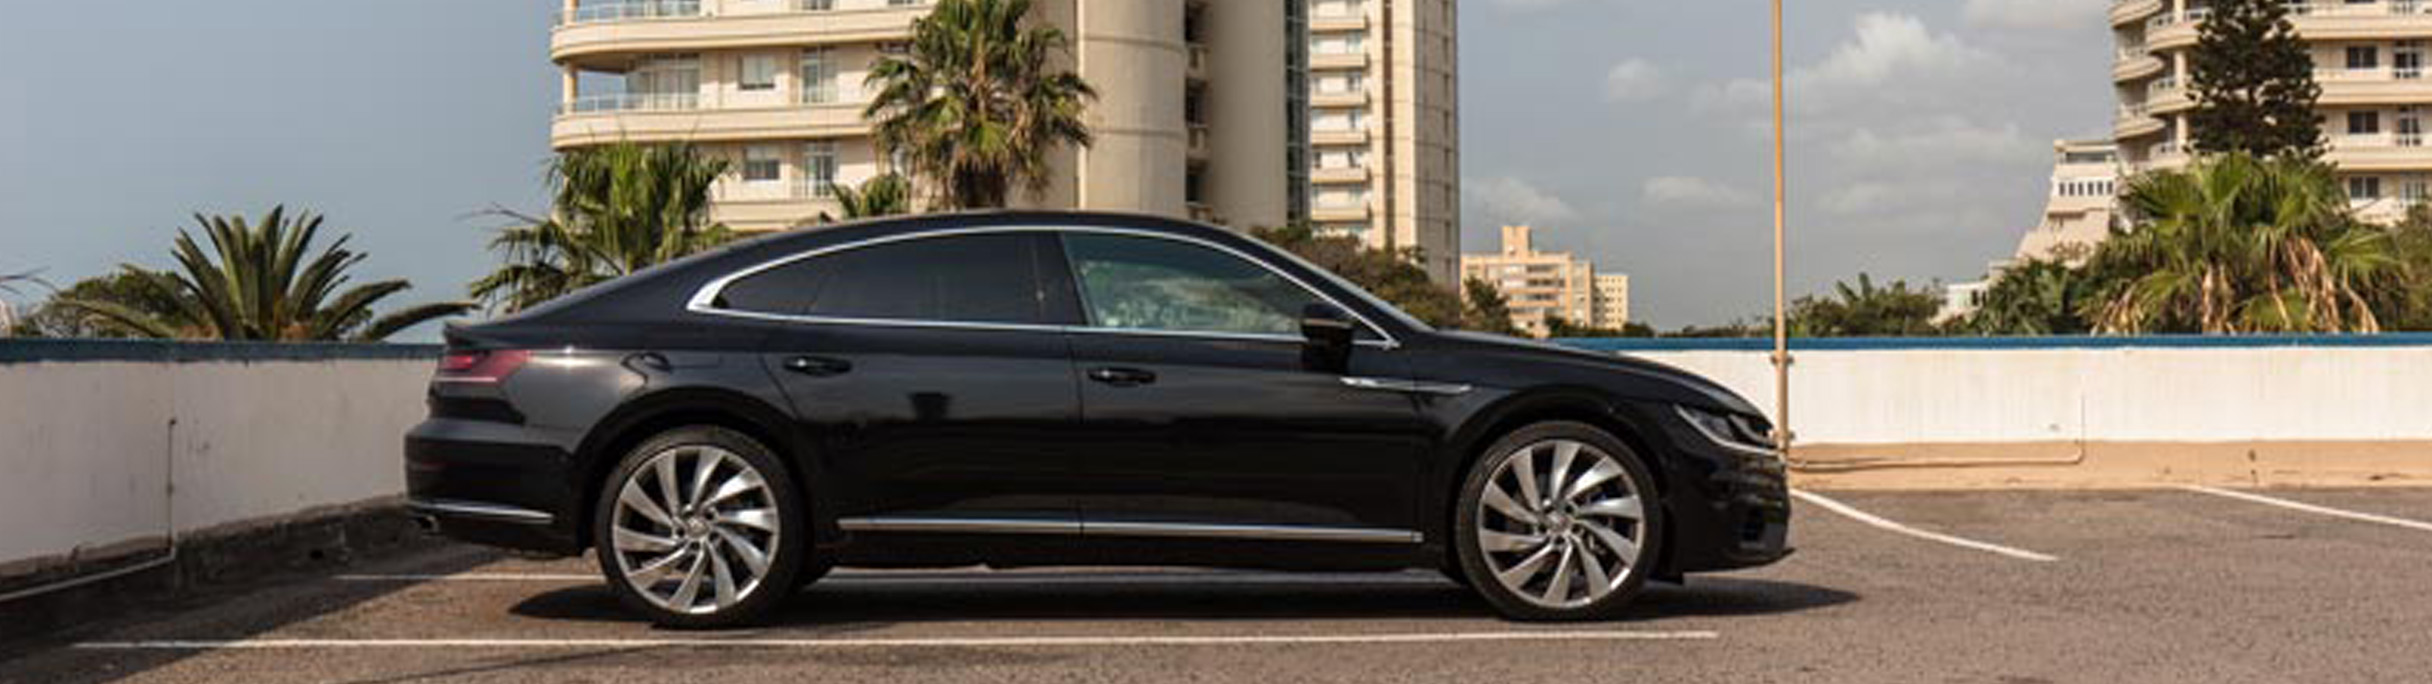 VW Arteon car review